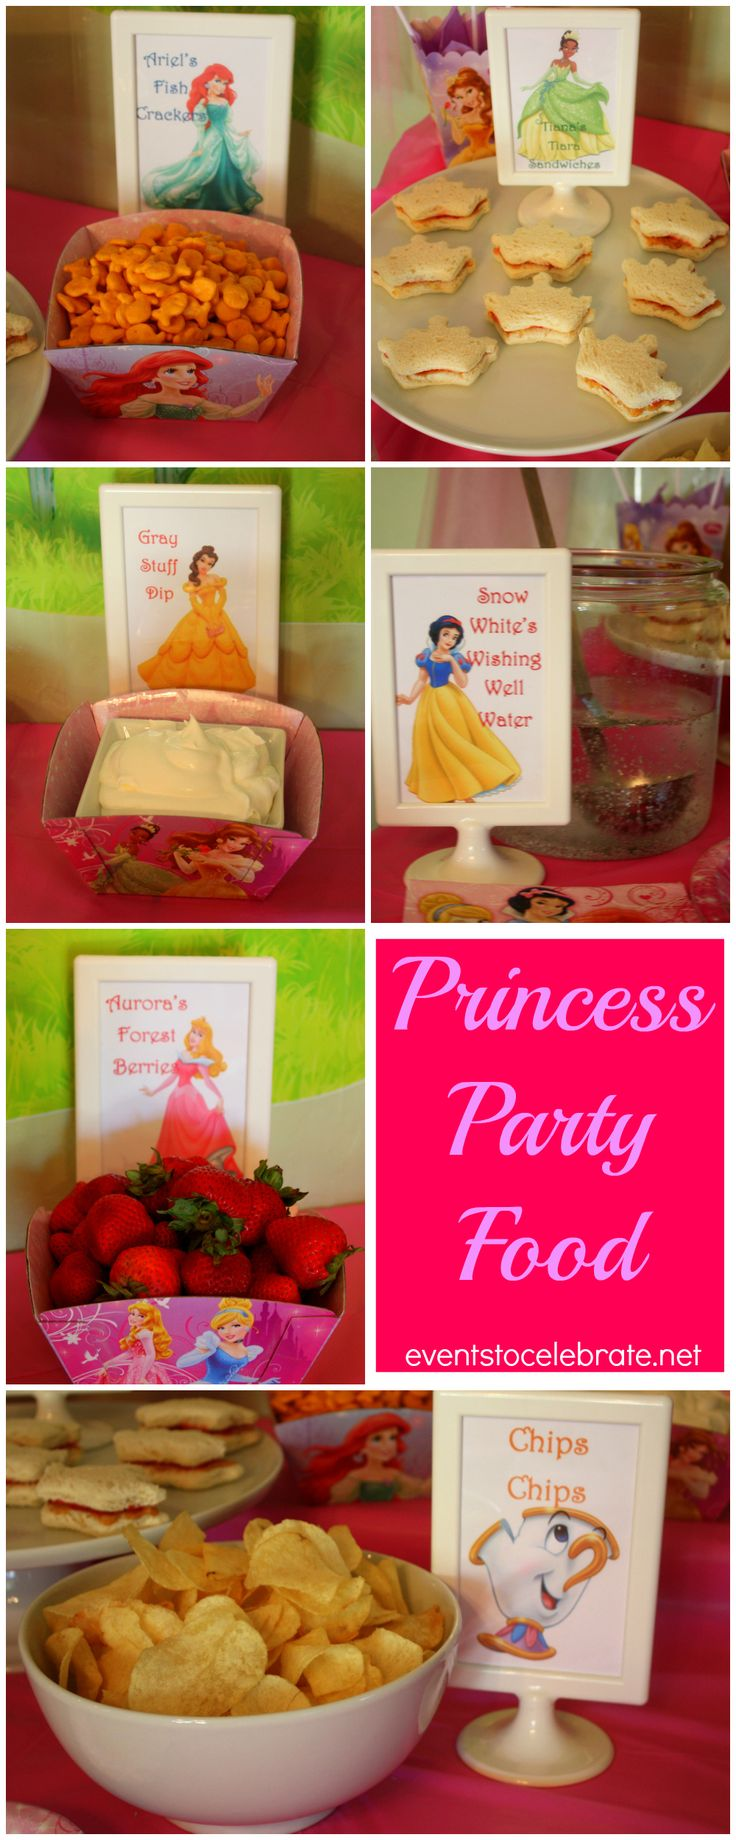 Disney Princes Party Ideas: cute food ideas with free printables! Events To Celebrate